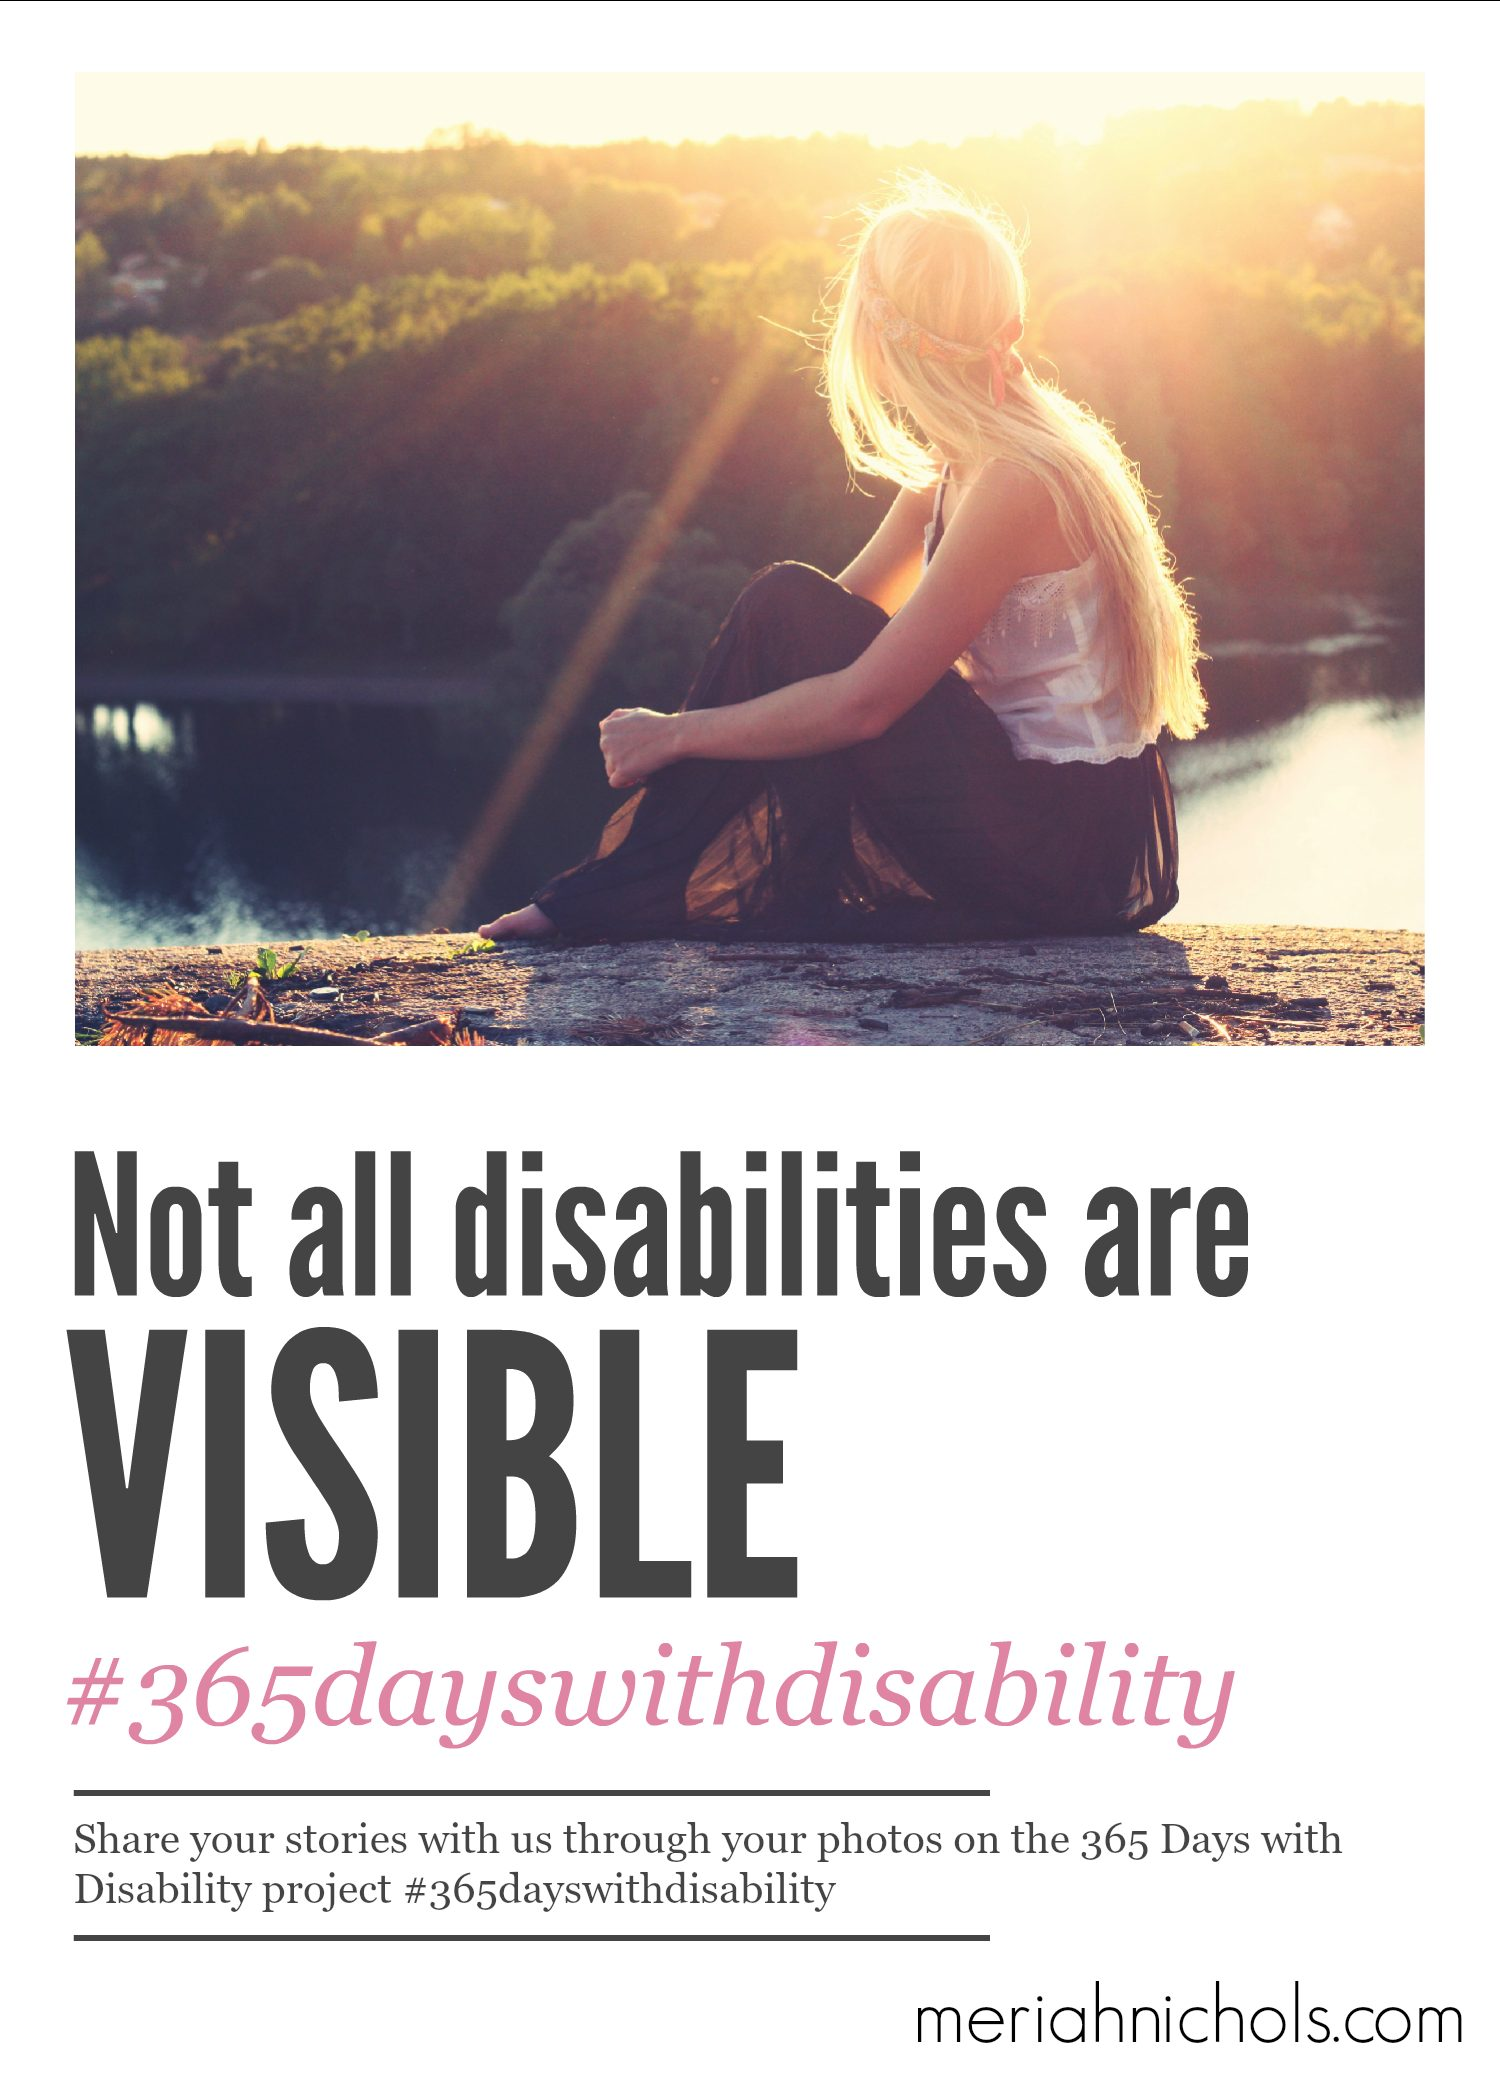 Featured photos from last week on the Instagram-based cross-disability project, 365 Days with Disability